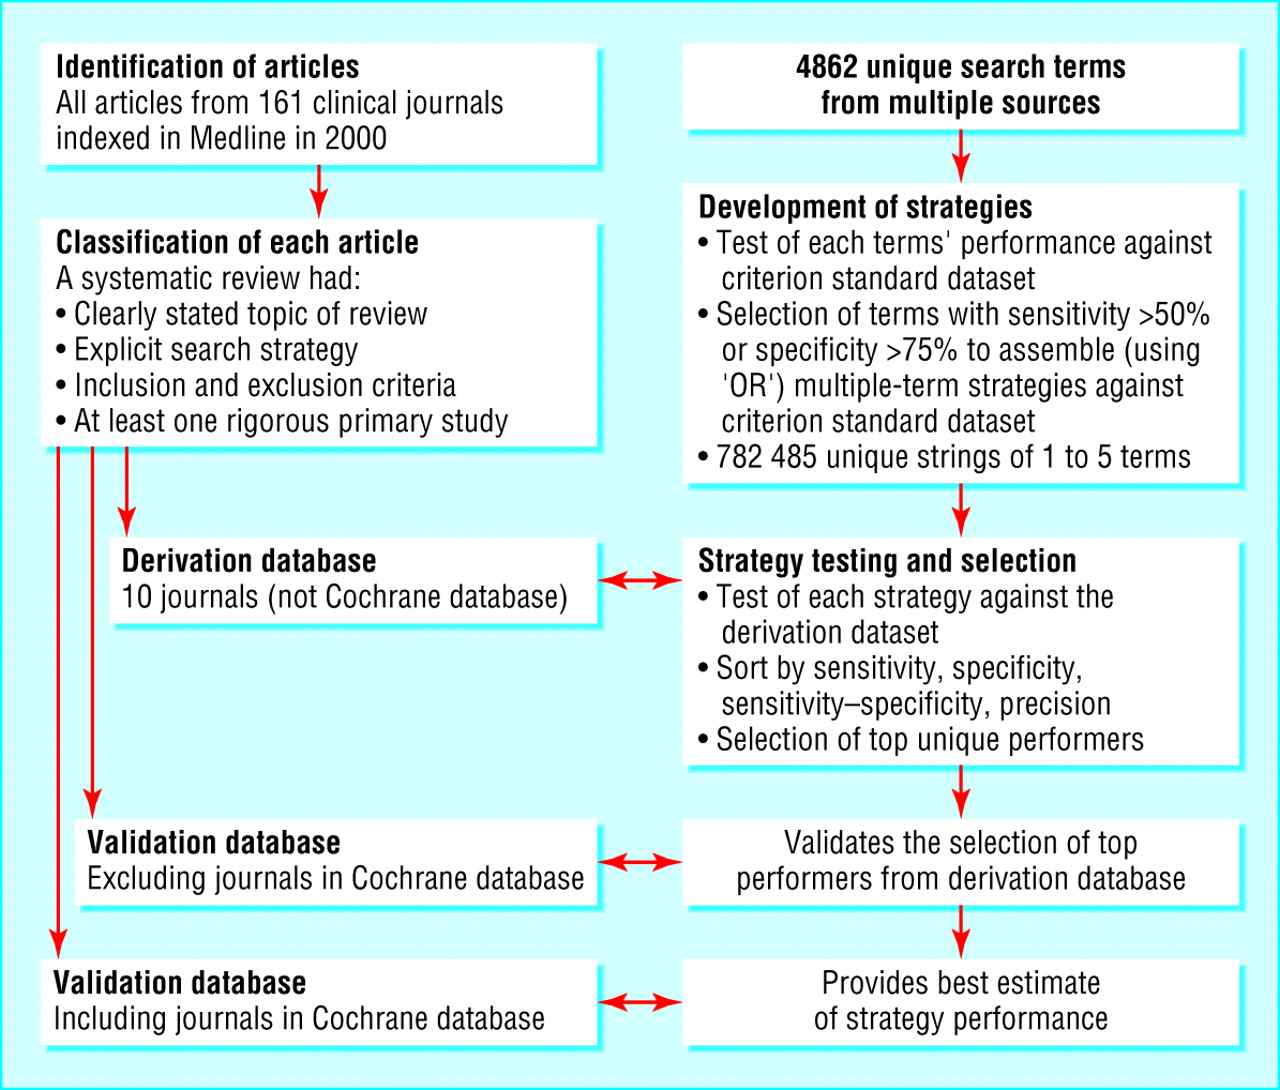 strategies for literature review searches Regular literature searches vs systematic review literature searches regular lit search systematic review lit search one database ok at least two/three databases up to dozens sample of good references exhaustive list of references  develop search strategies and run searches.